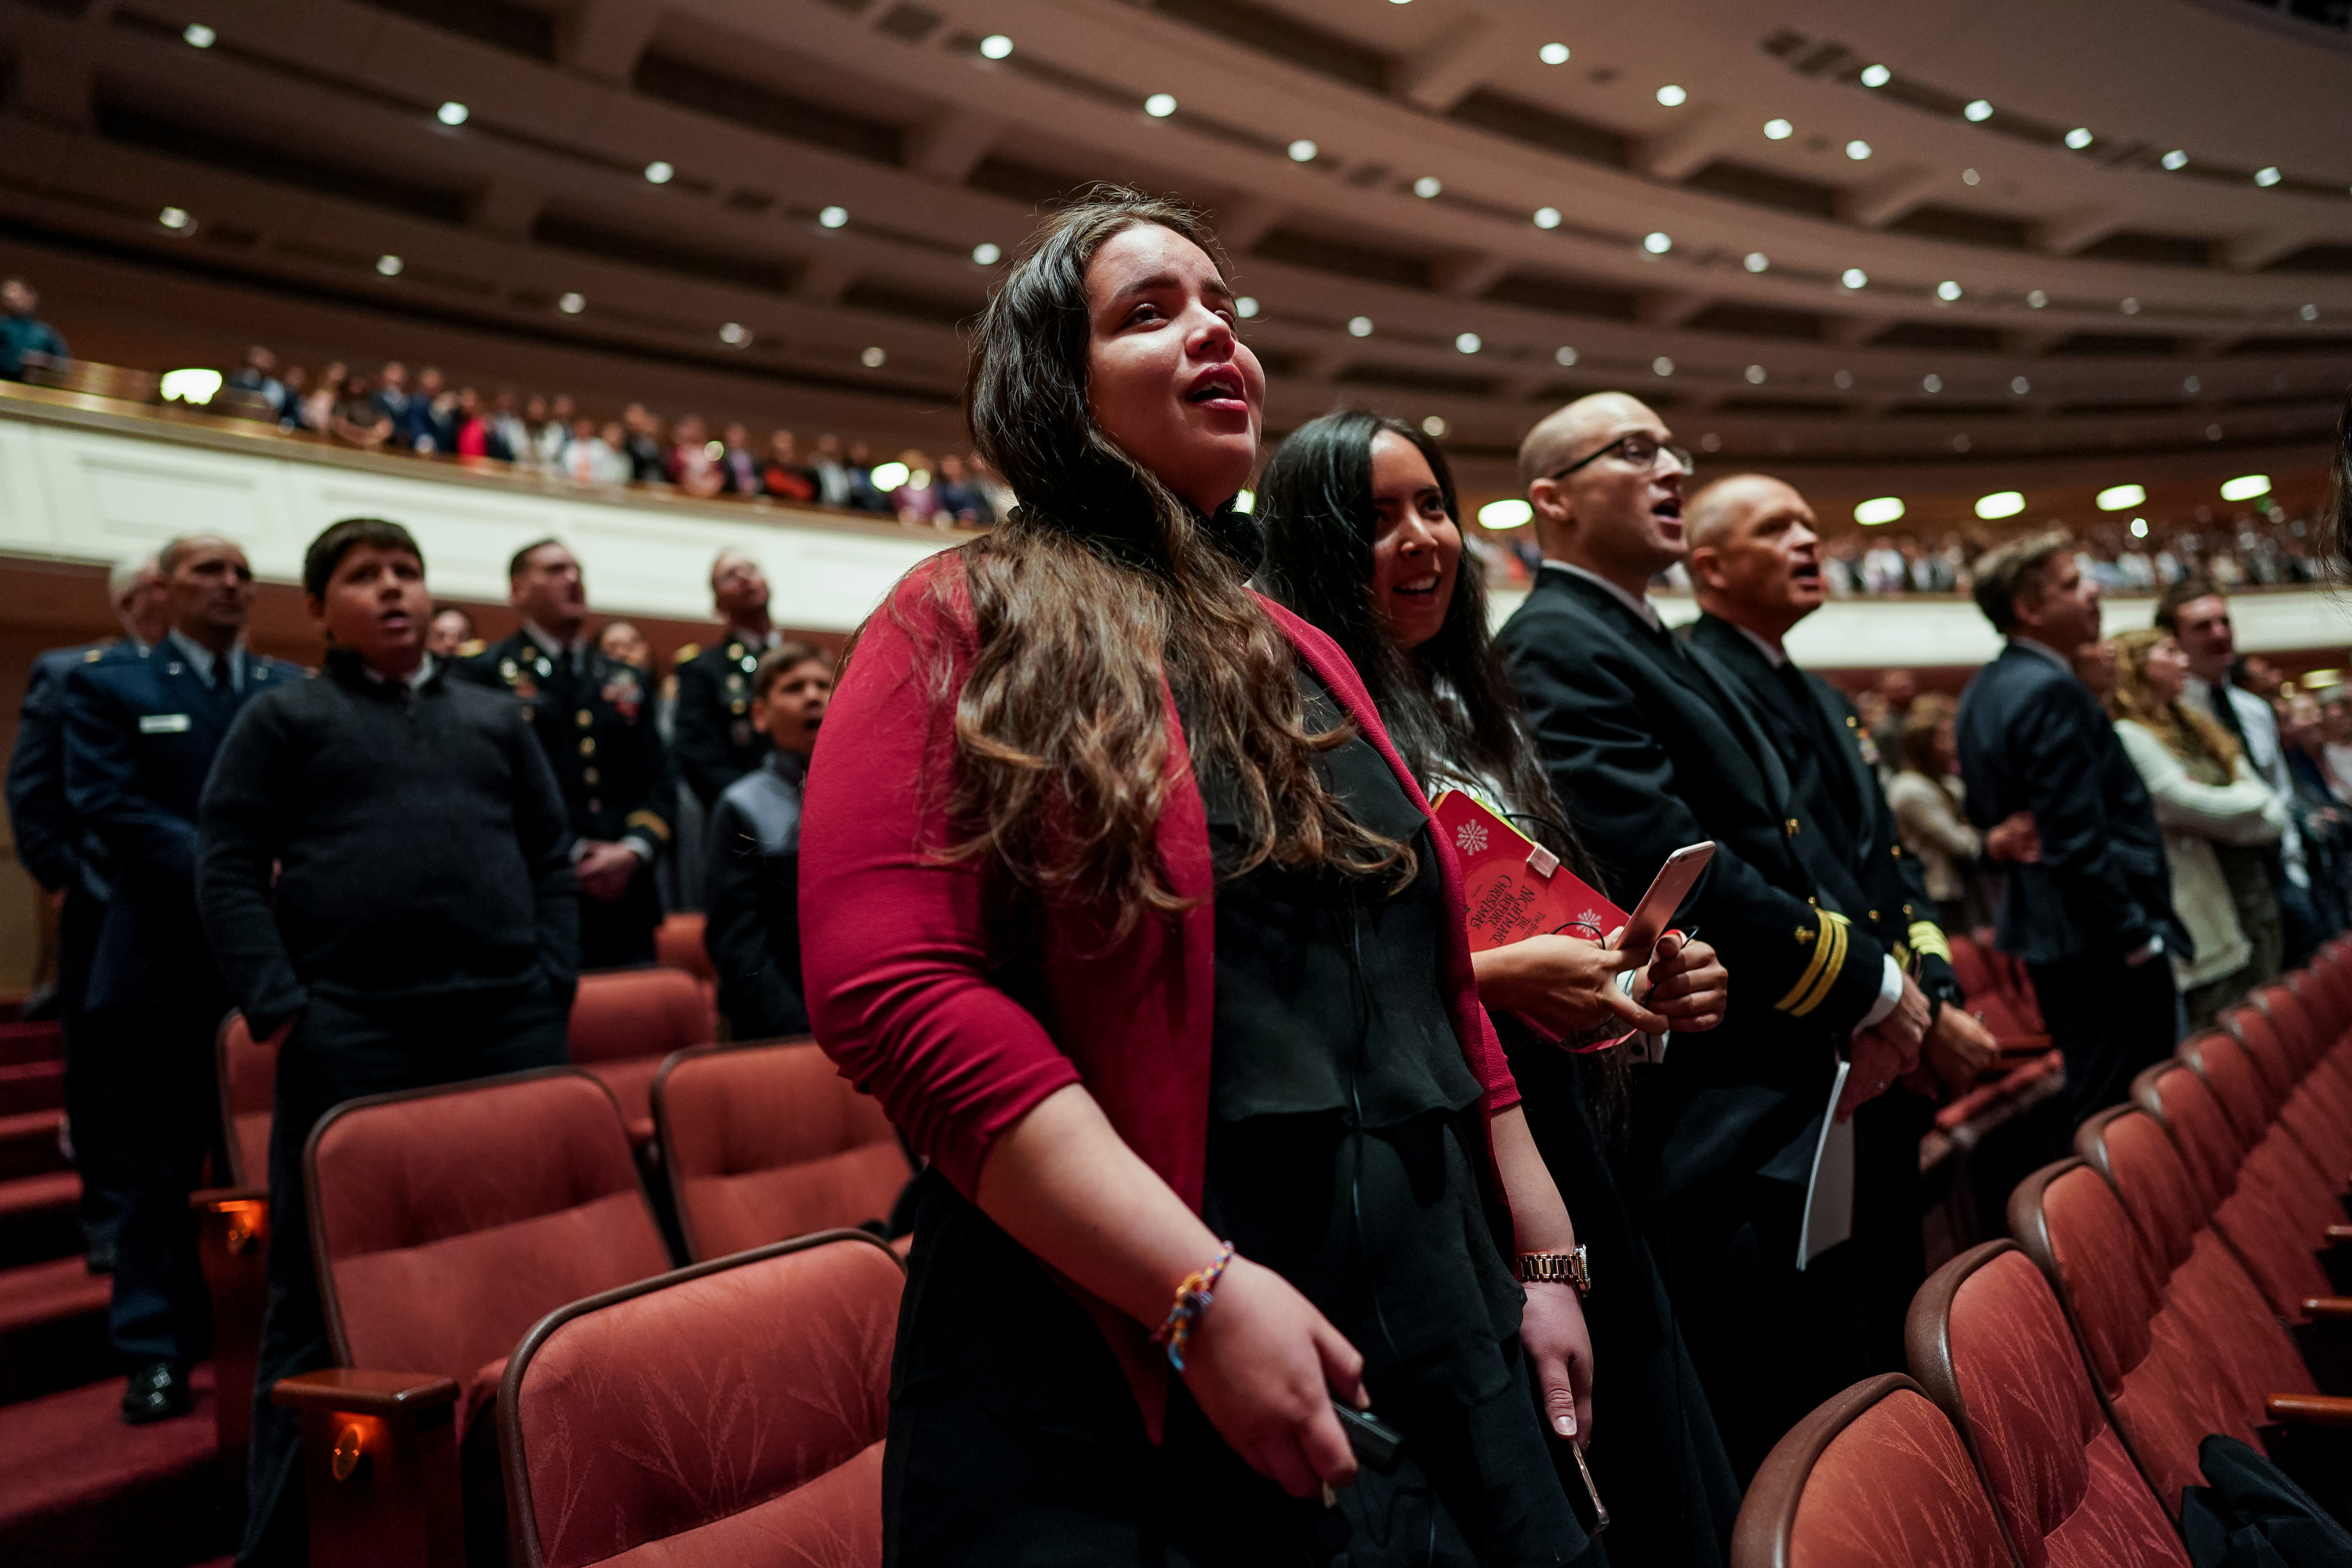 Conferencegoers sing along with the Tabernacle Choir at Temple Square during the Saturday morning session of the 189th Semiannual General Conference of The Church of Jesus Christ of Latter-day Saints at the Conference Center in Salt Lake City on Saturday, Oct. 5, 2019.